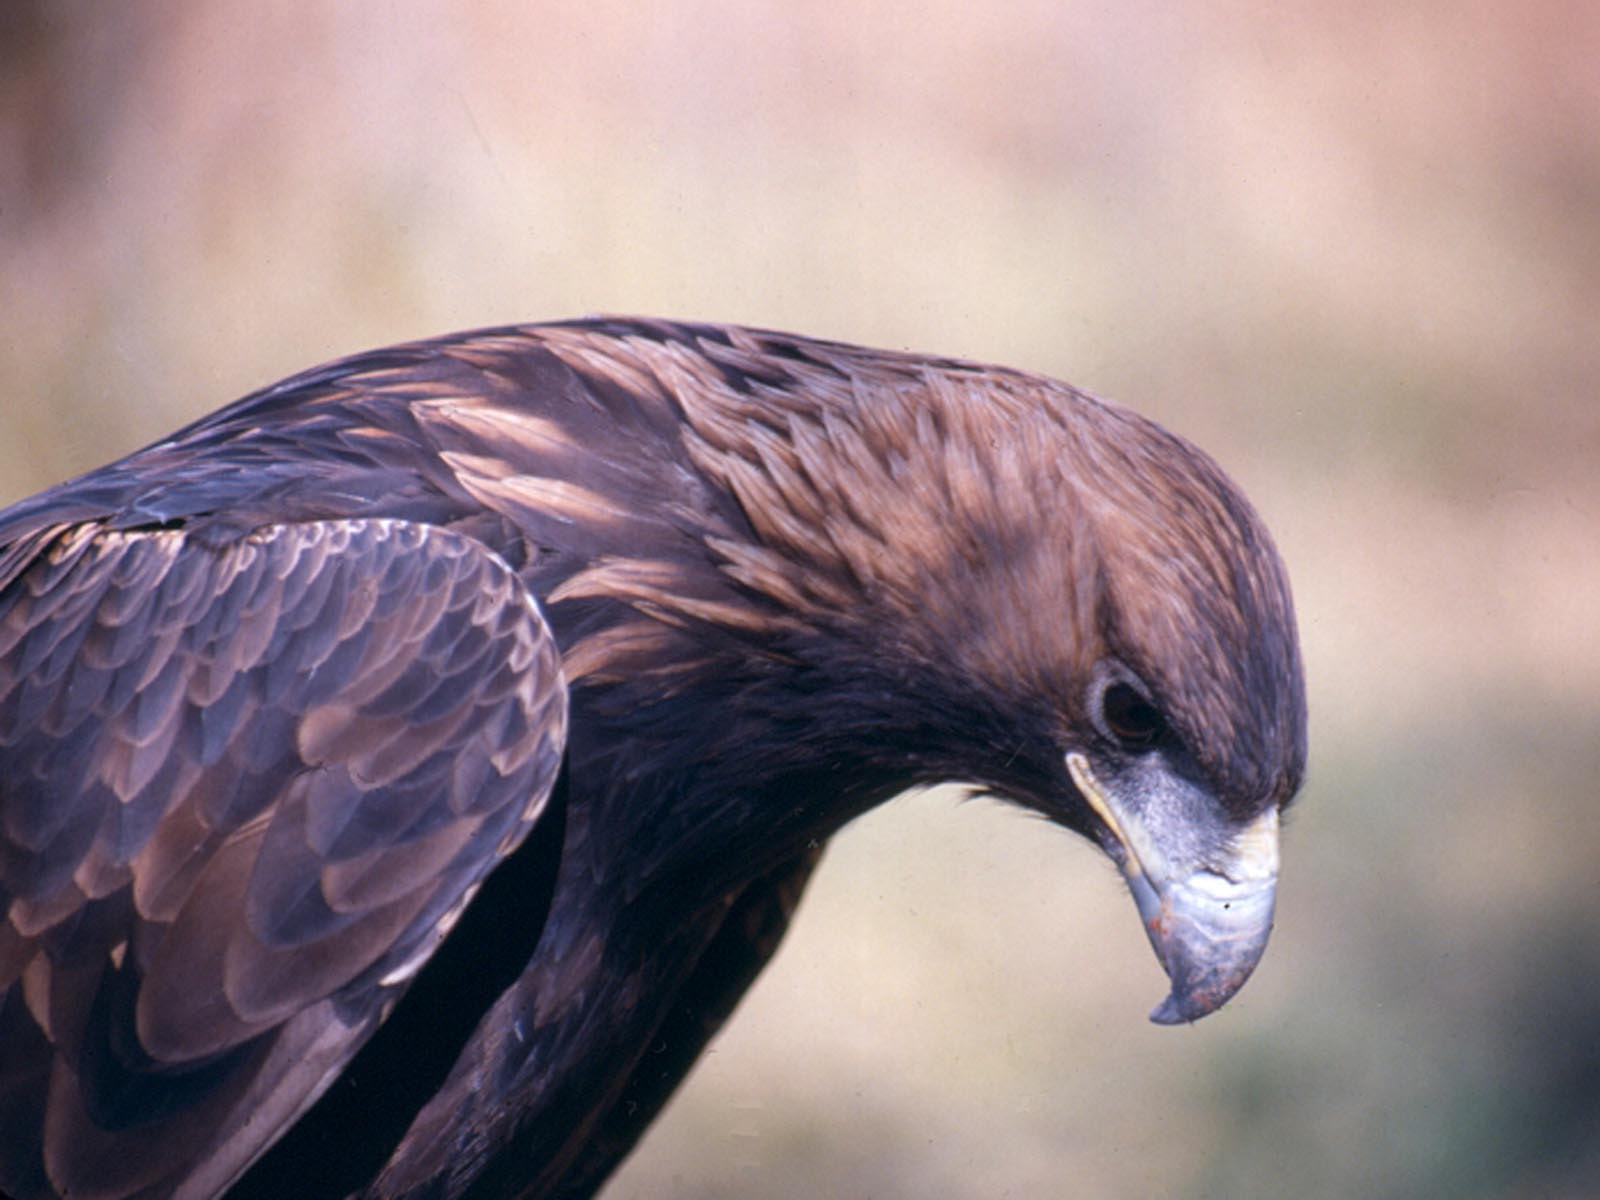 Golden Eagle, Grand Teton National Park, Wyoming | Photo Credit: NPS